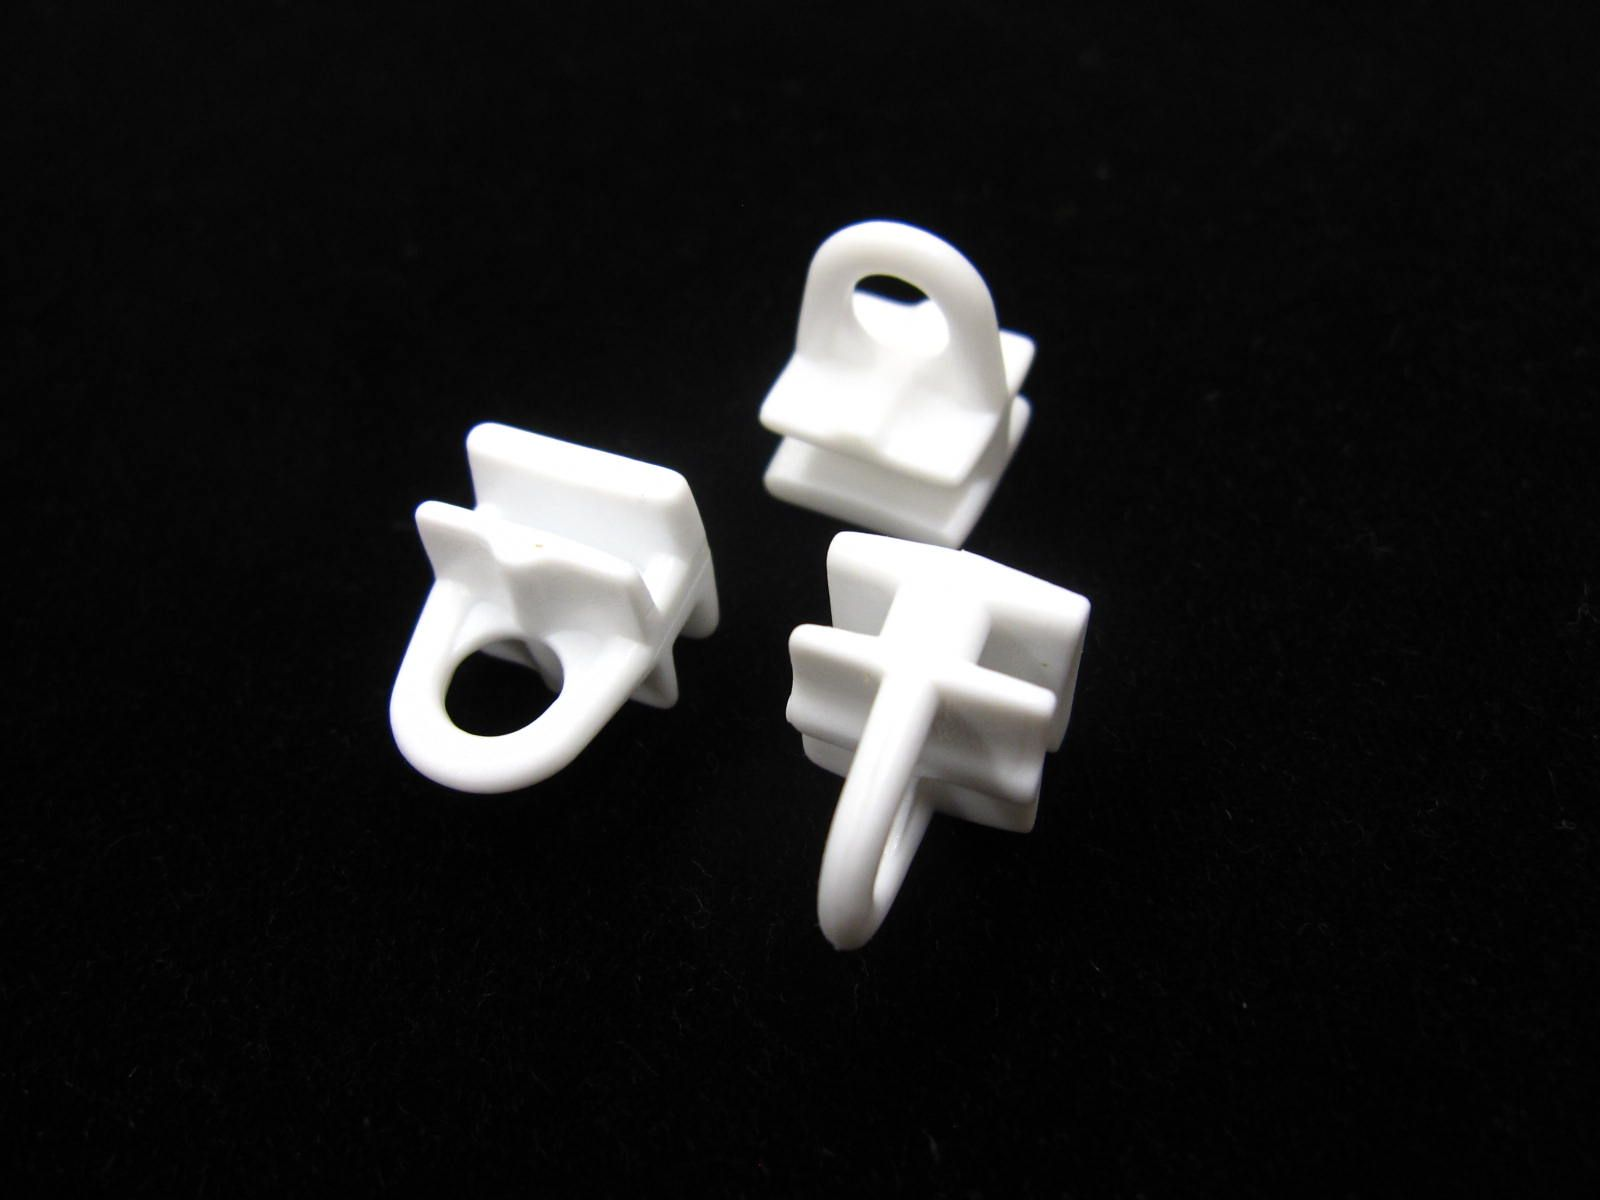 30 Ceiling Rail Curtain Track Gliders Pole Runners For Tape Hooks